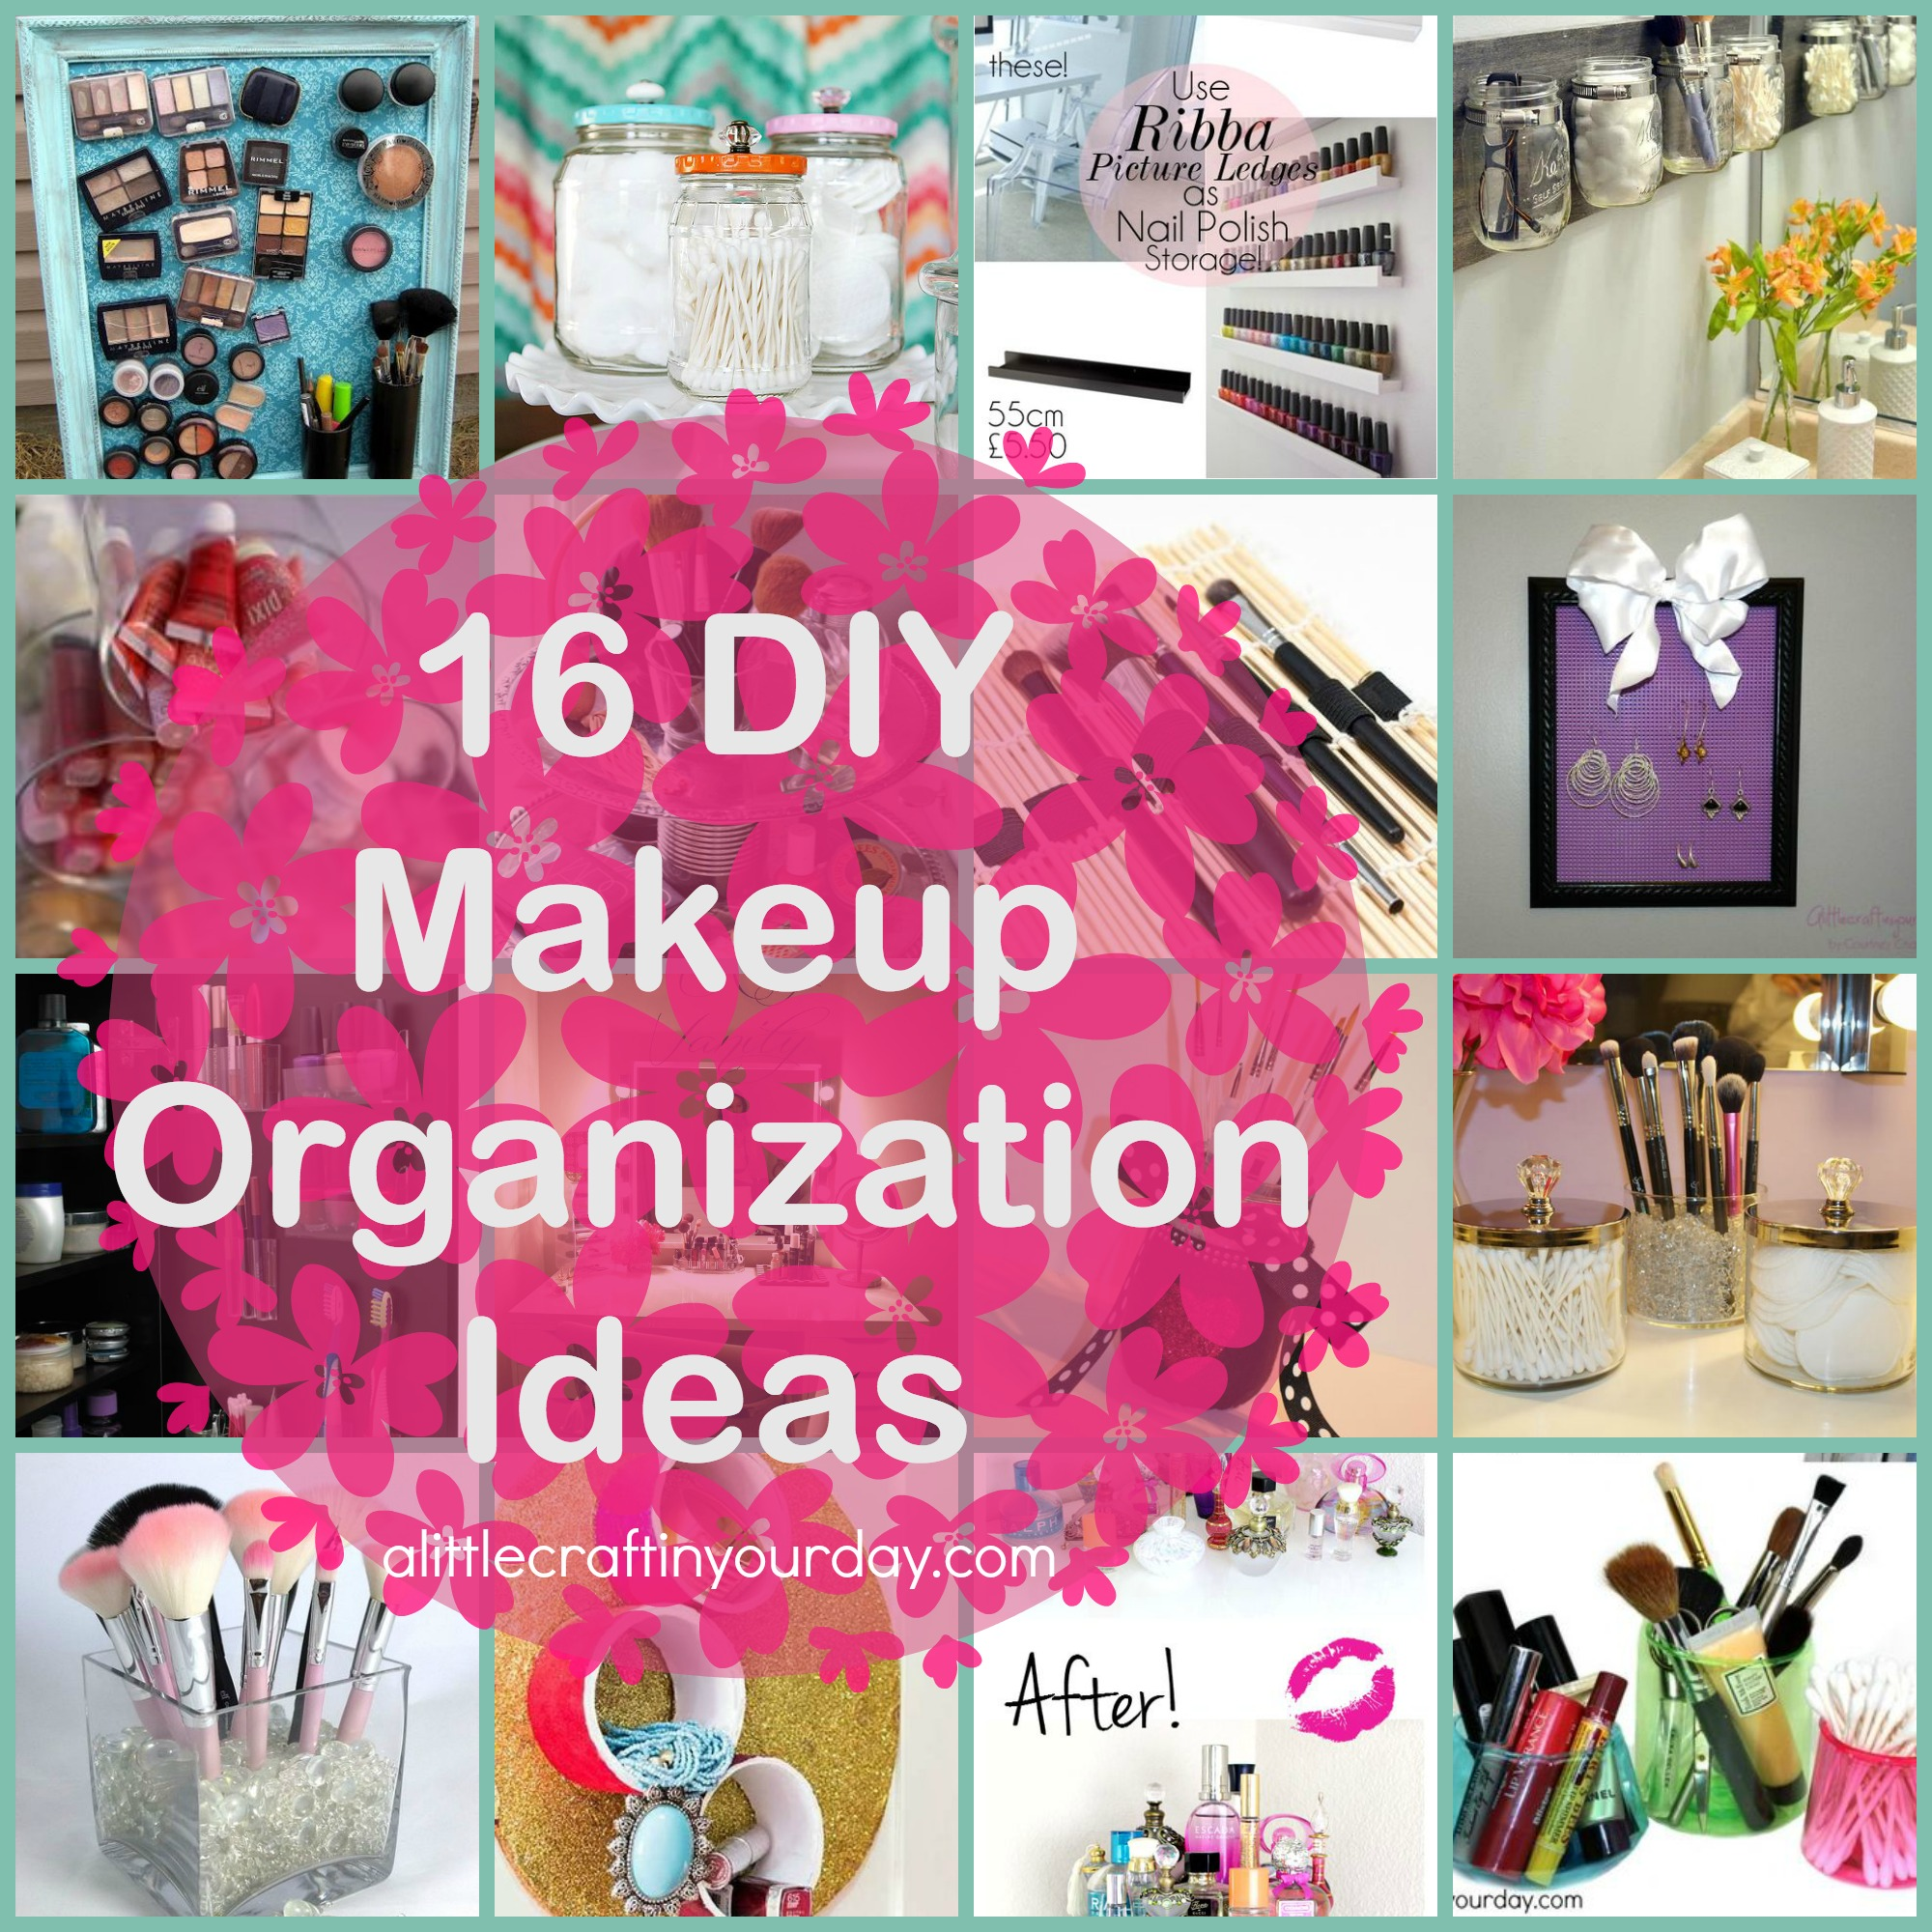 3/31 | 16 DIY Makeup Organization Ideas. 16_DIY_Makeup_Organization_Ideas